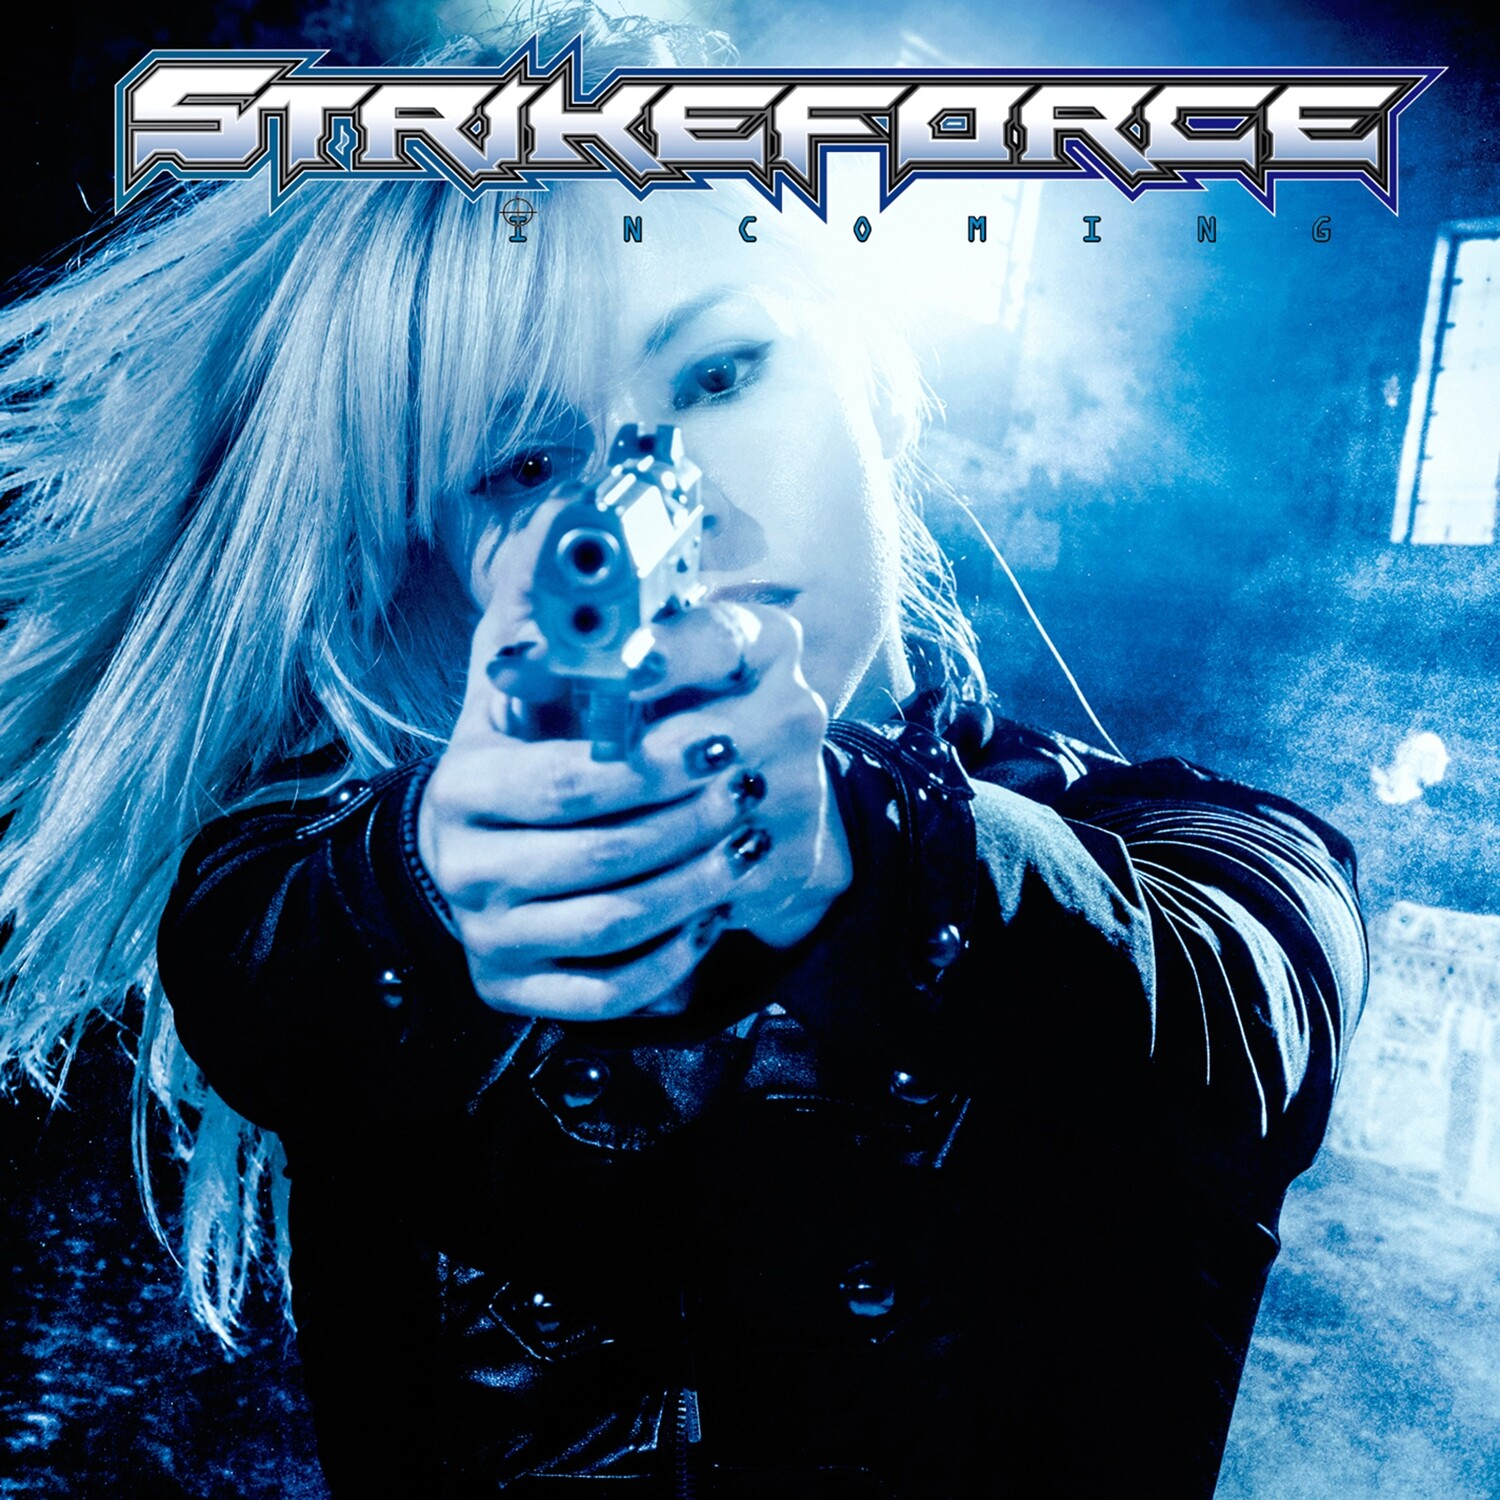 Strikeforce - Incoming E.P.